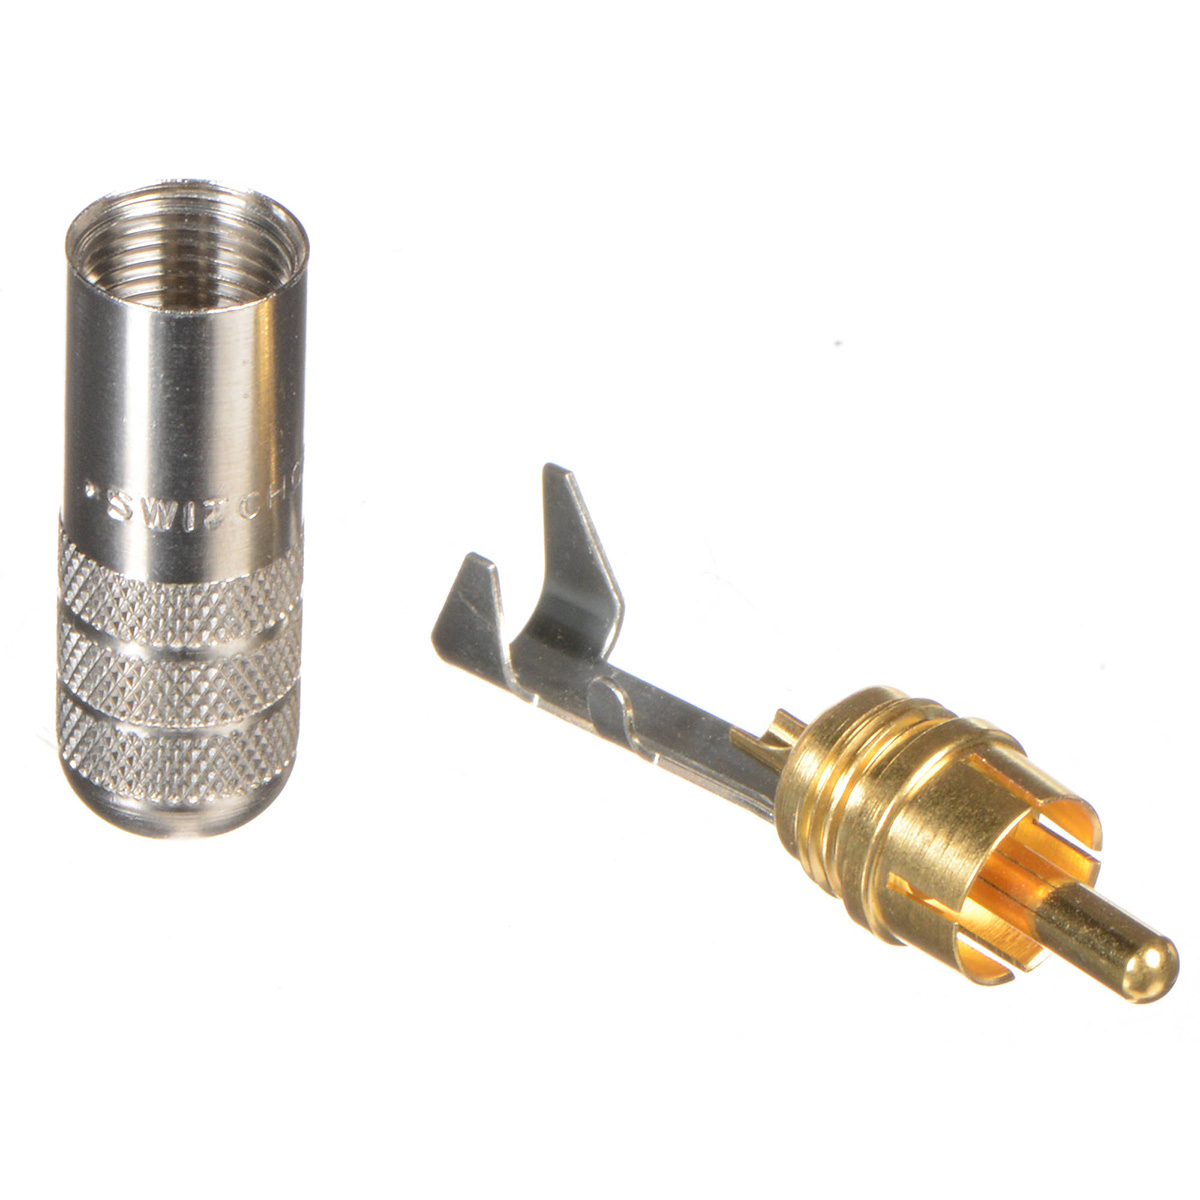 Switchcraft 3502A RCA straight plug Gold-plated